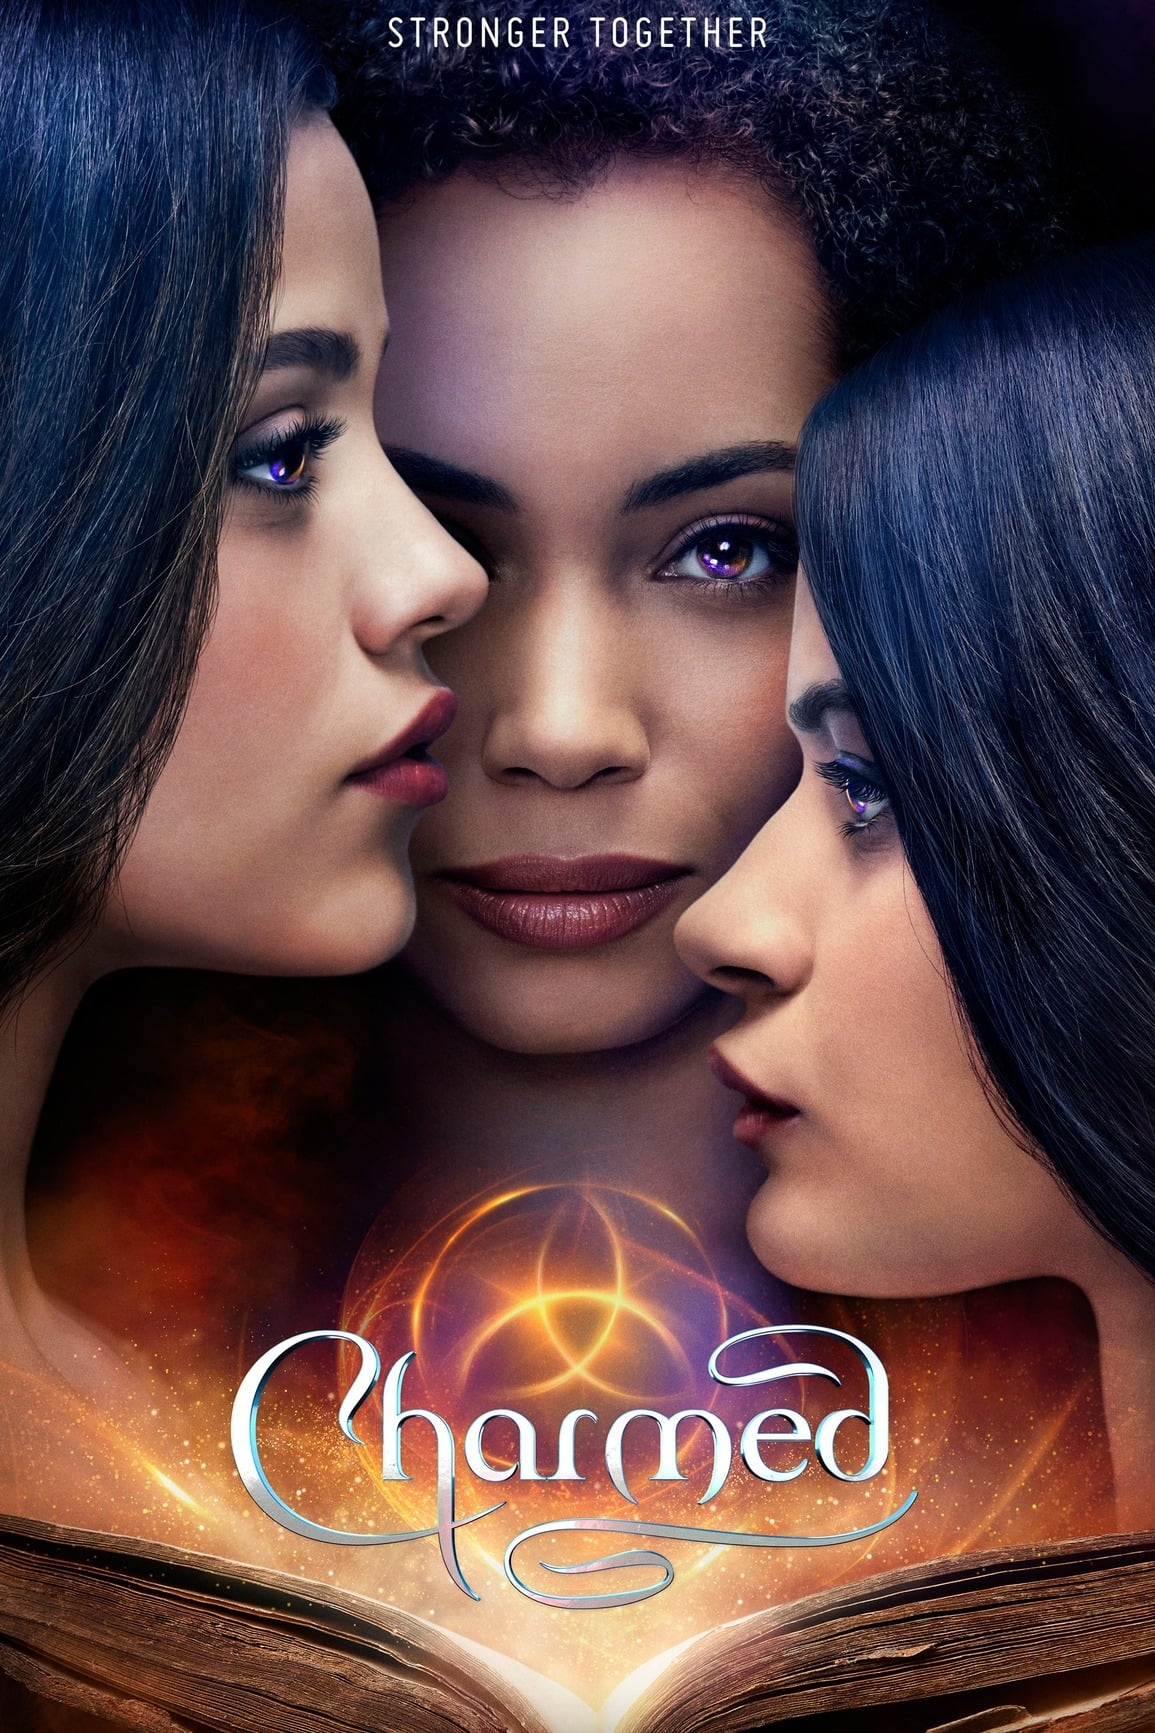 image for Charmed